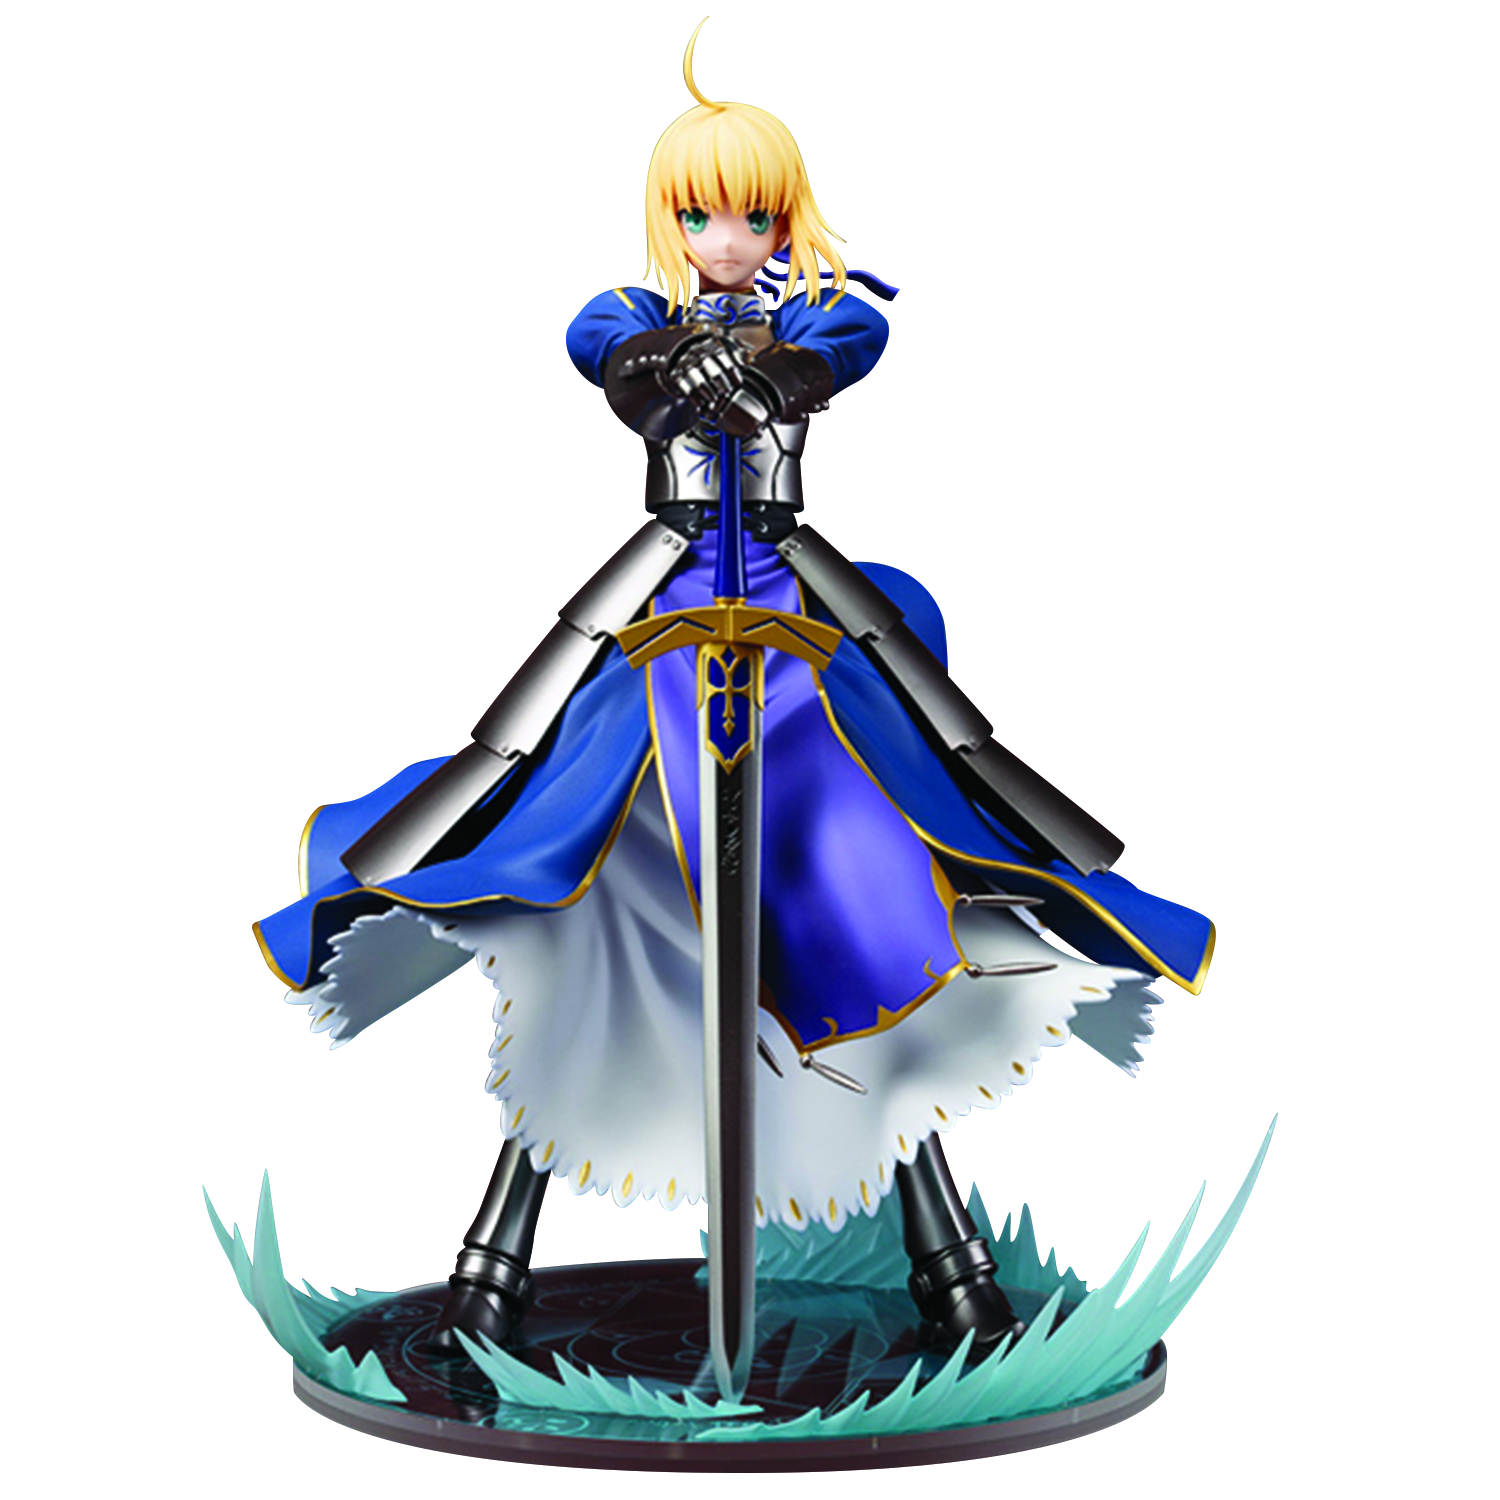 Statuette Night King: FATE/STAY NIGHT KING OF KNIGHTS SABER ANI